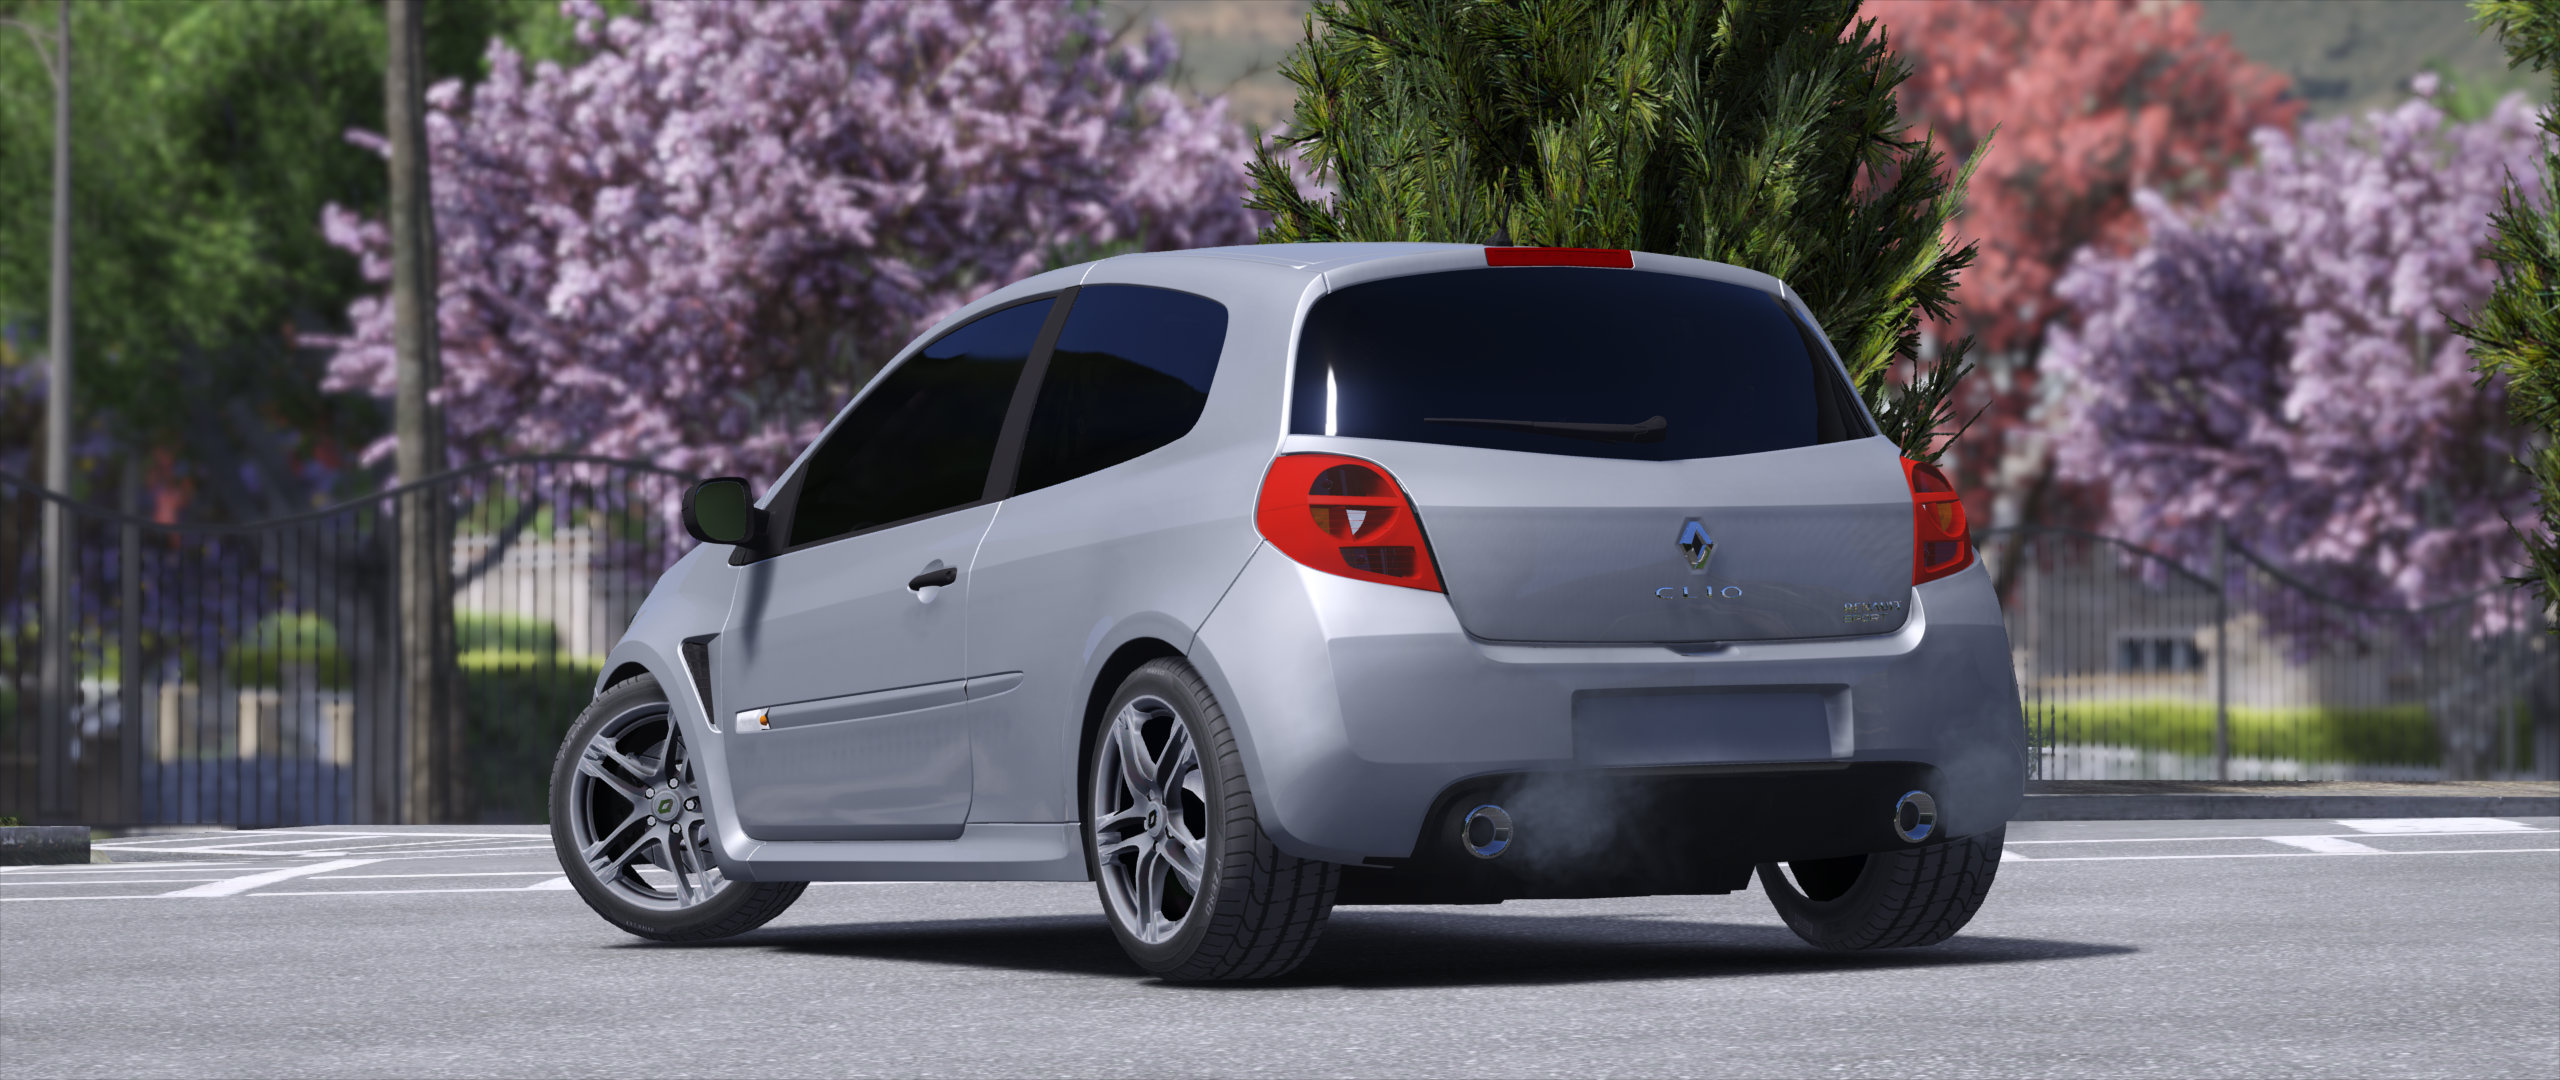 renault clio 3 rs 2010 replace gta5. Black Bedroom Furniture Sets. Home Design Ideas